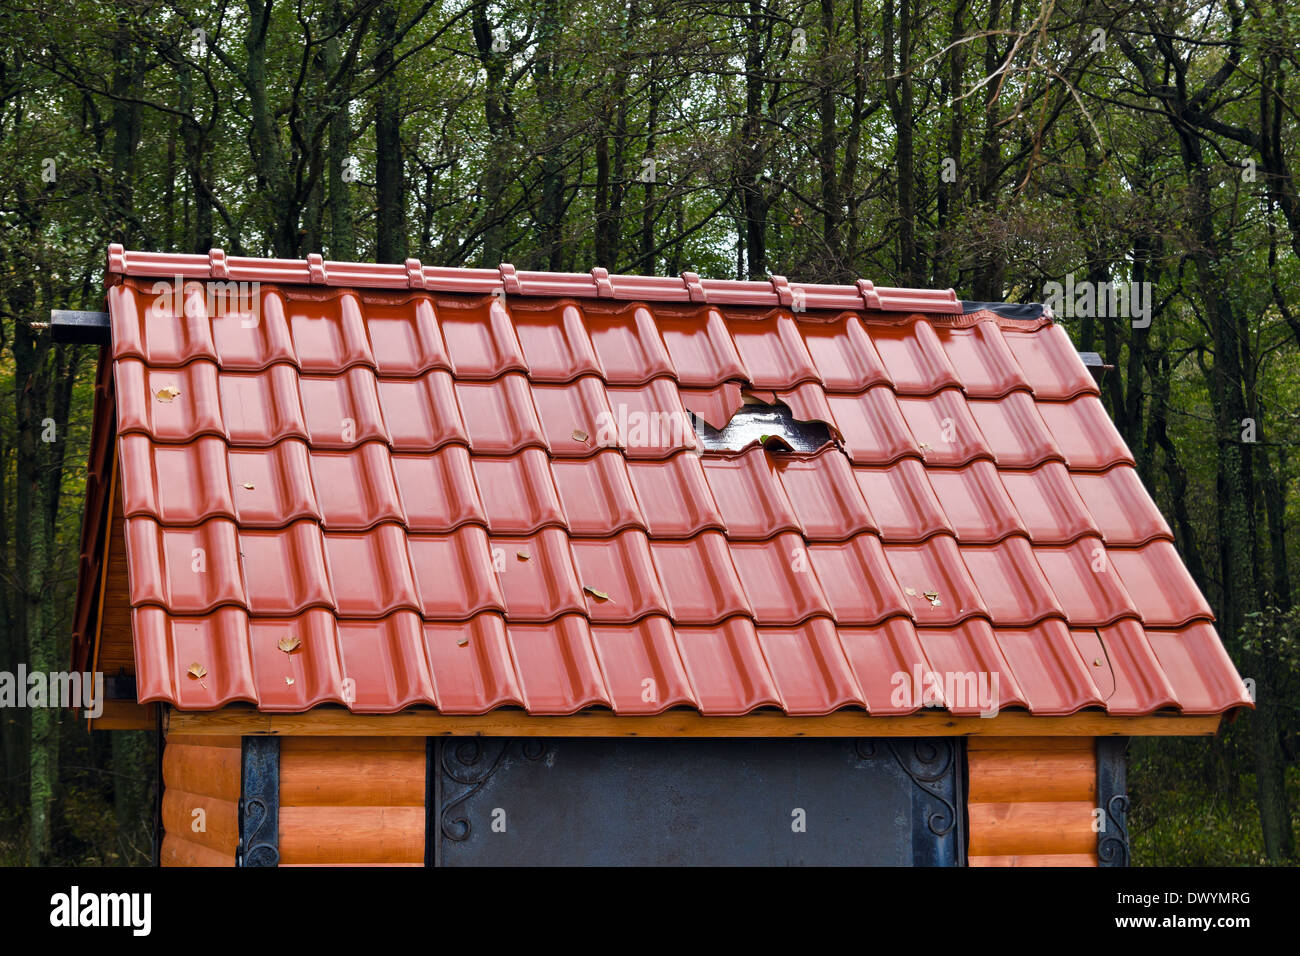 Barbarism: a hole in the new roof of the small house - Stock Image